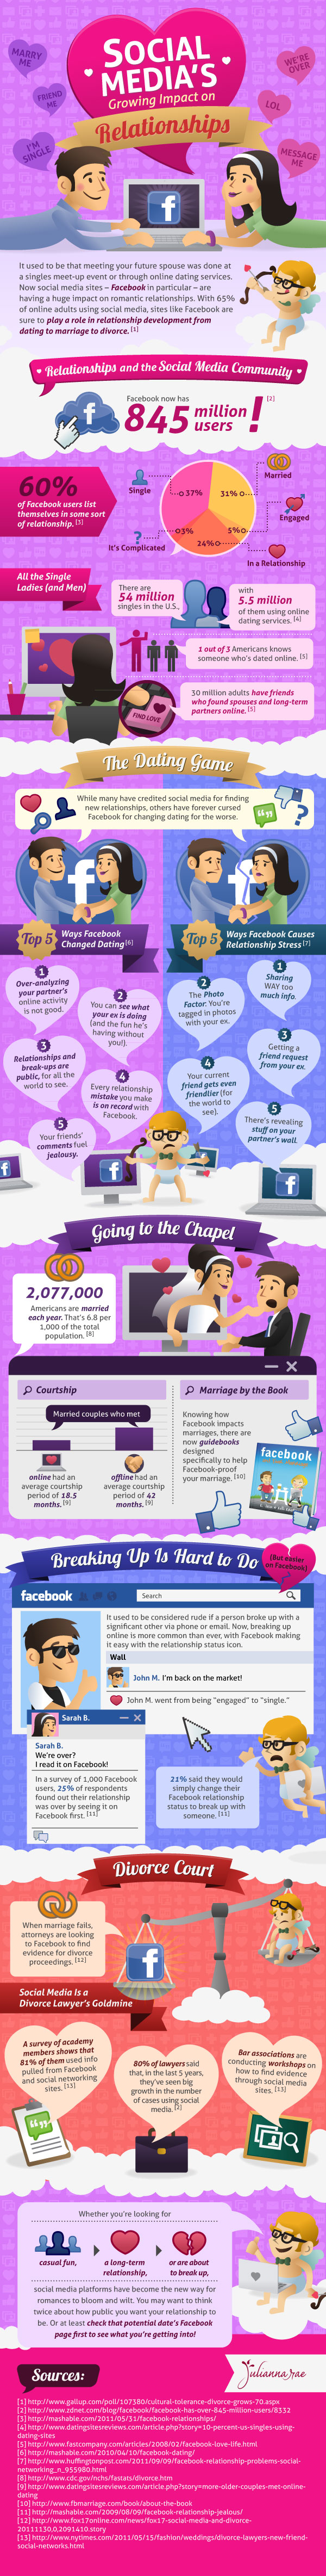 How has online dating changed relationships